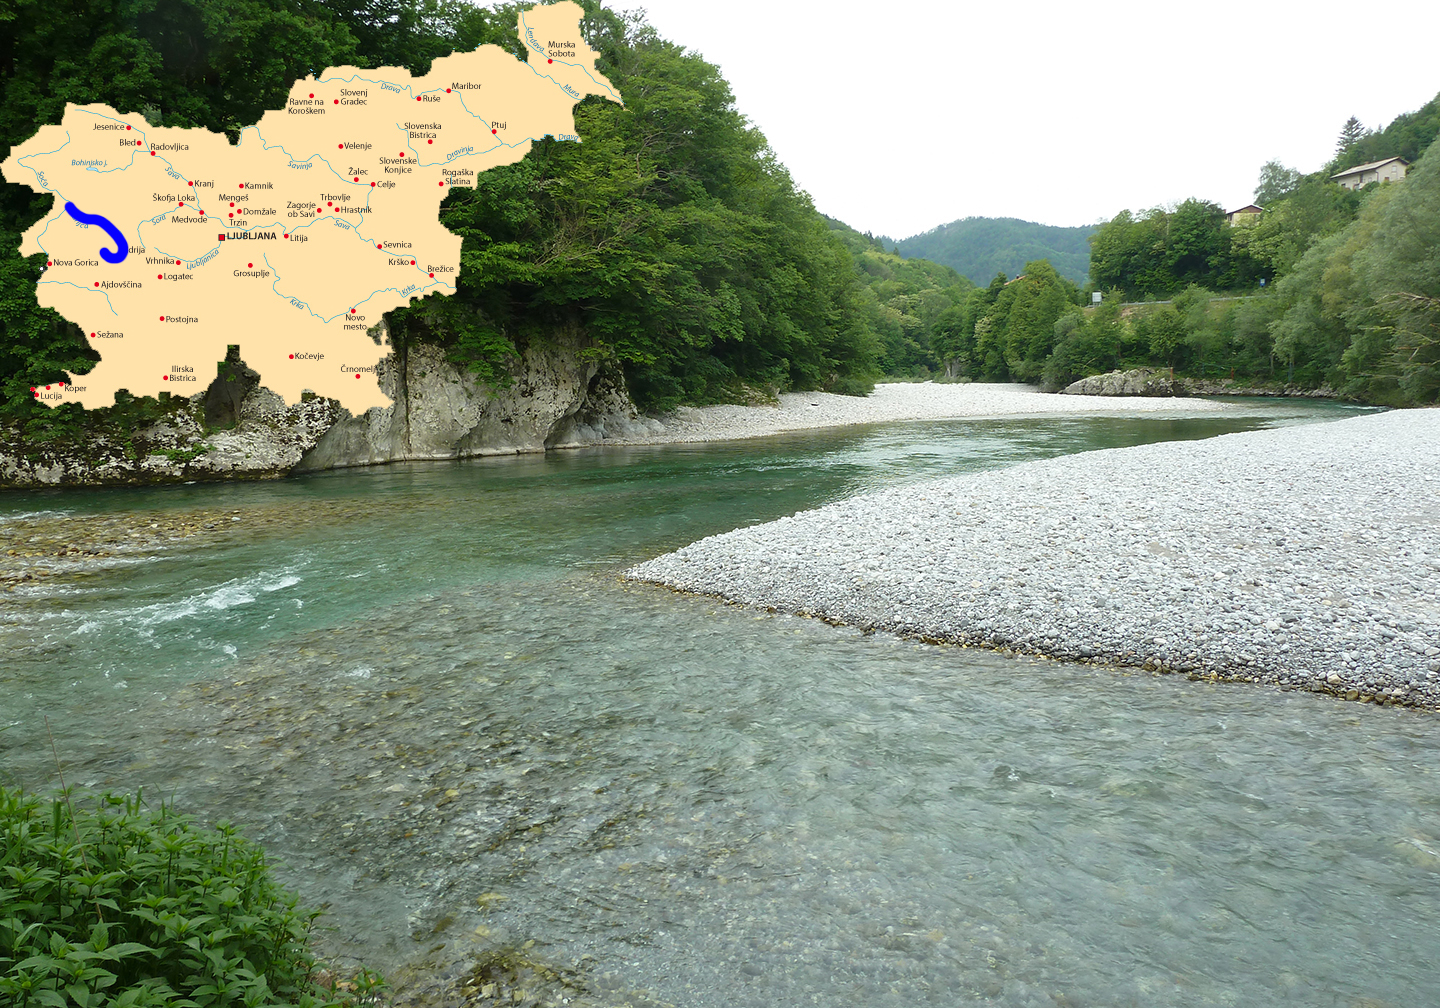 The Idrijca River, one of the best places for fly fishing in Slovenia, with a map of Slovenia superimposed in the top left